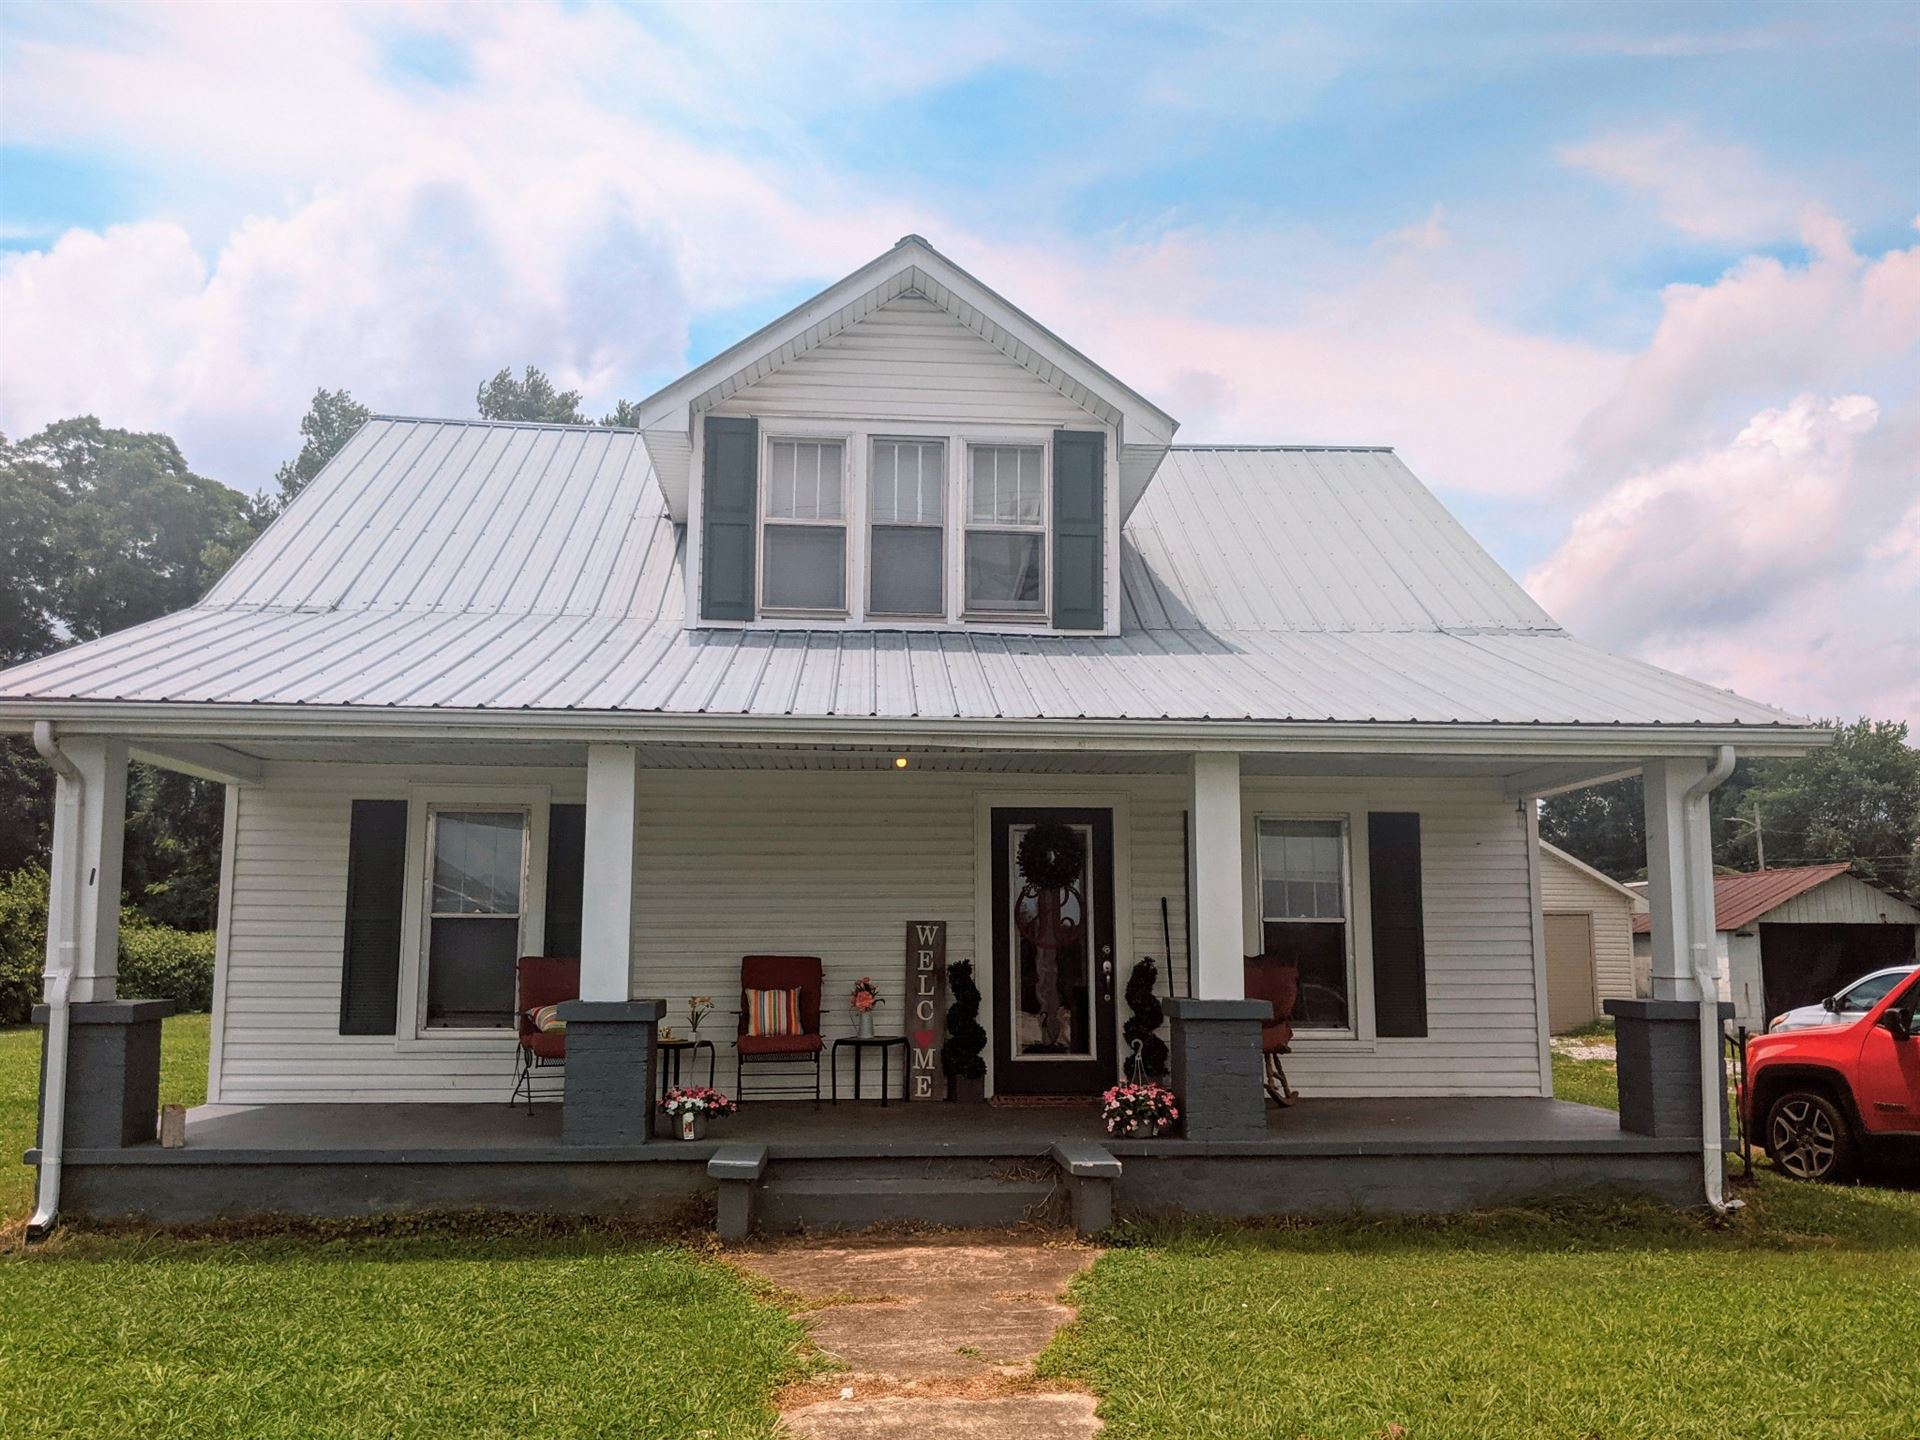 307 Red Rd, McMinnville, TN 37110 - MLS#: 2274973